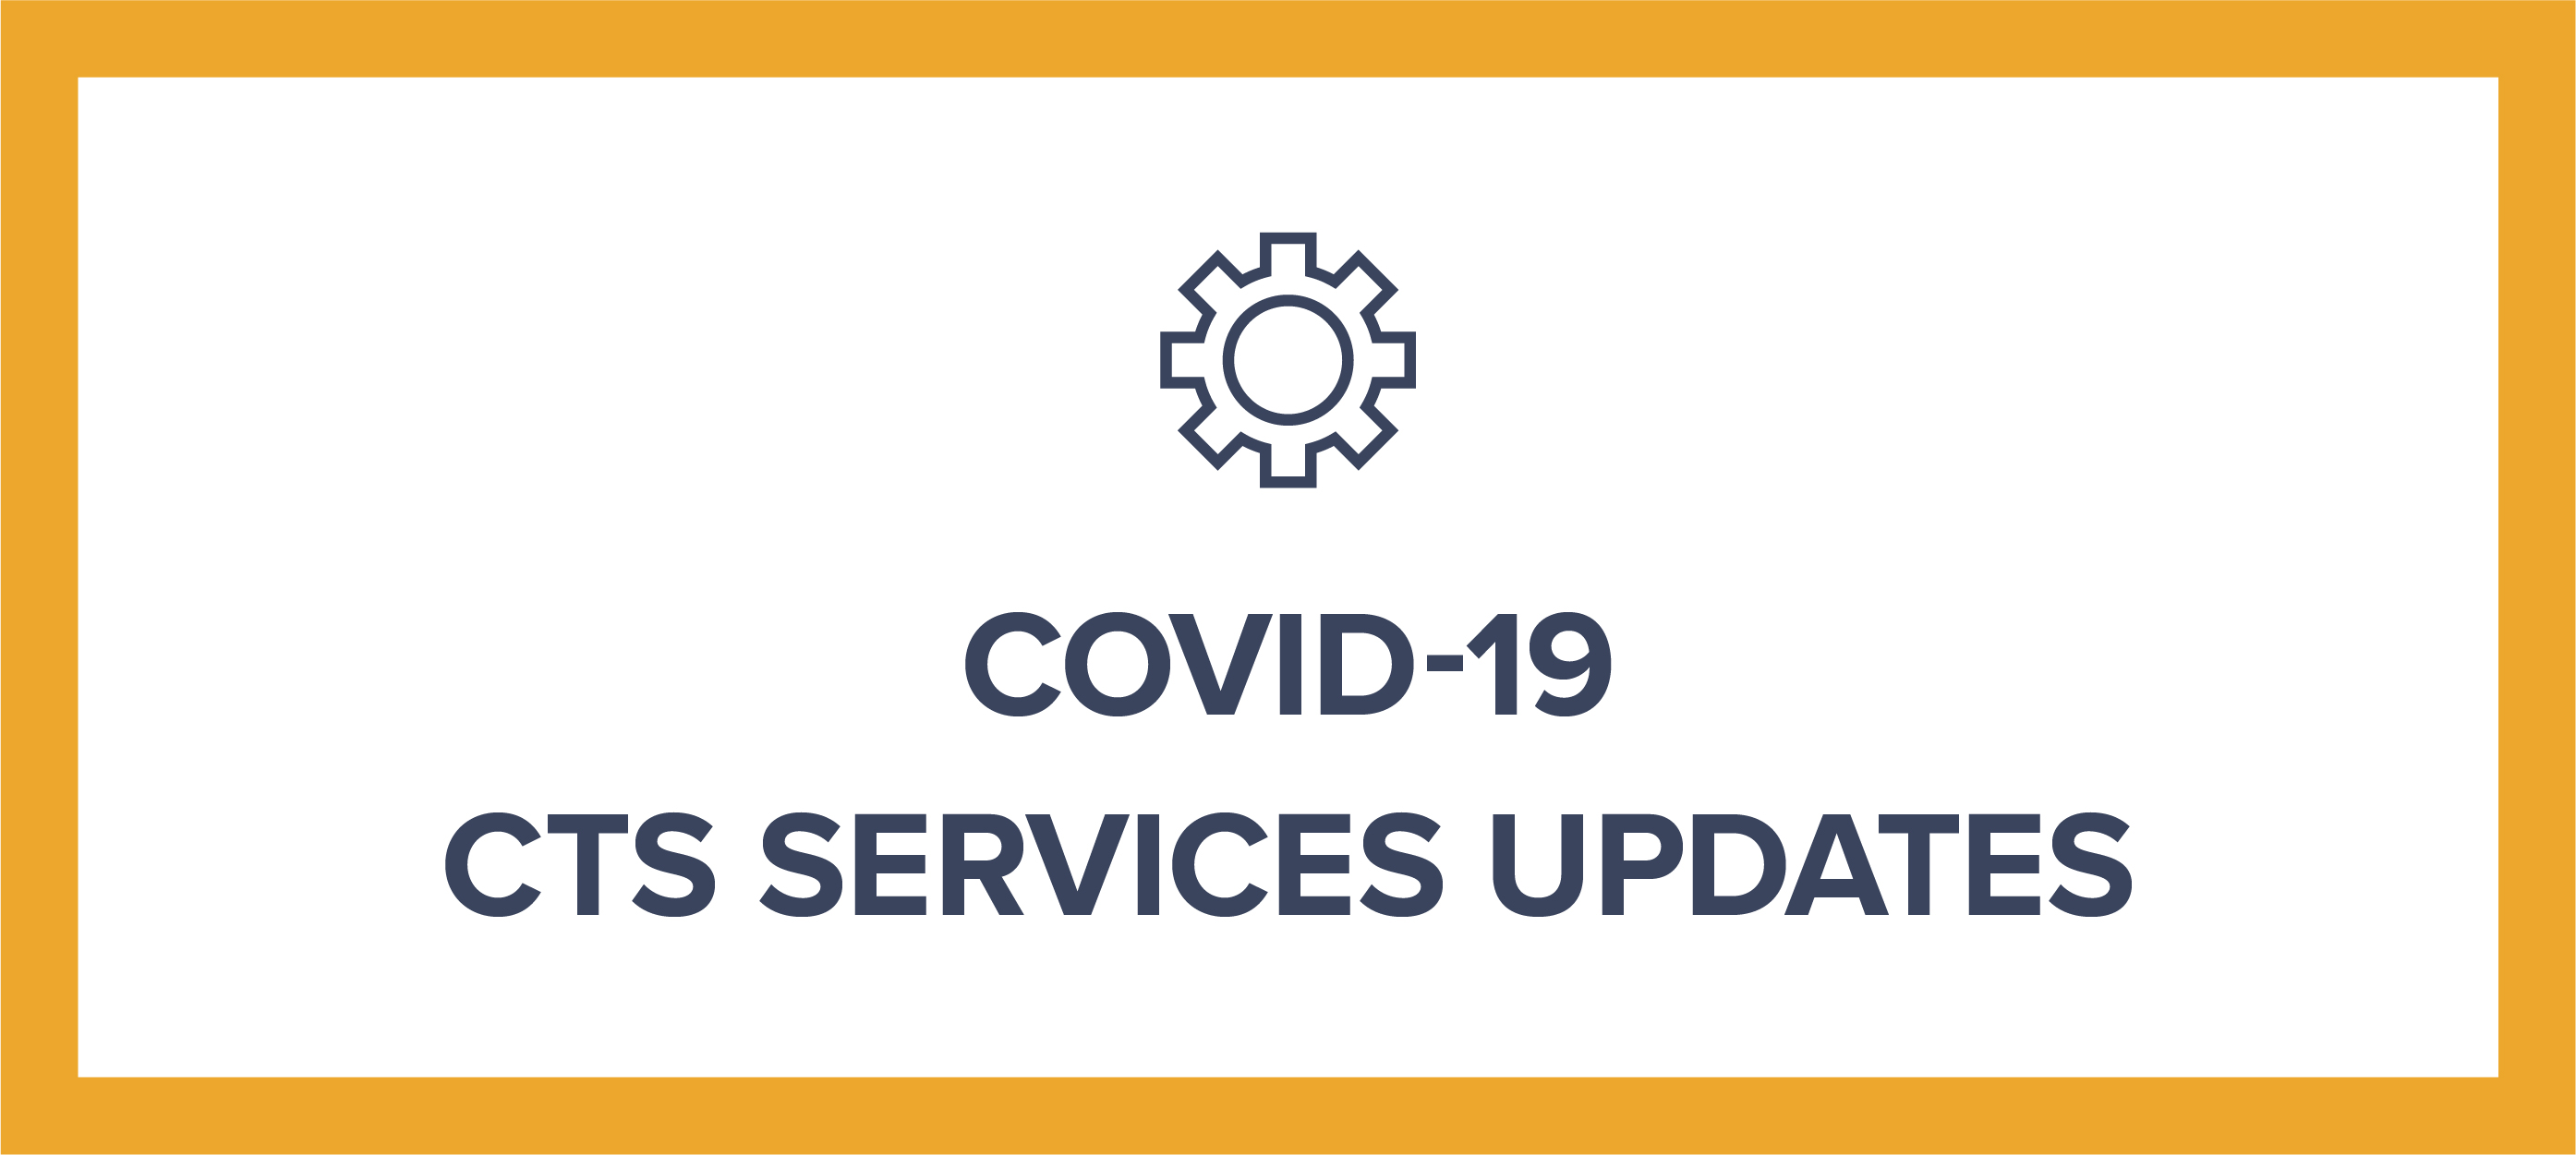 Graphic: COVID-19 CTS Services Updates